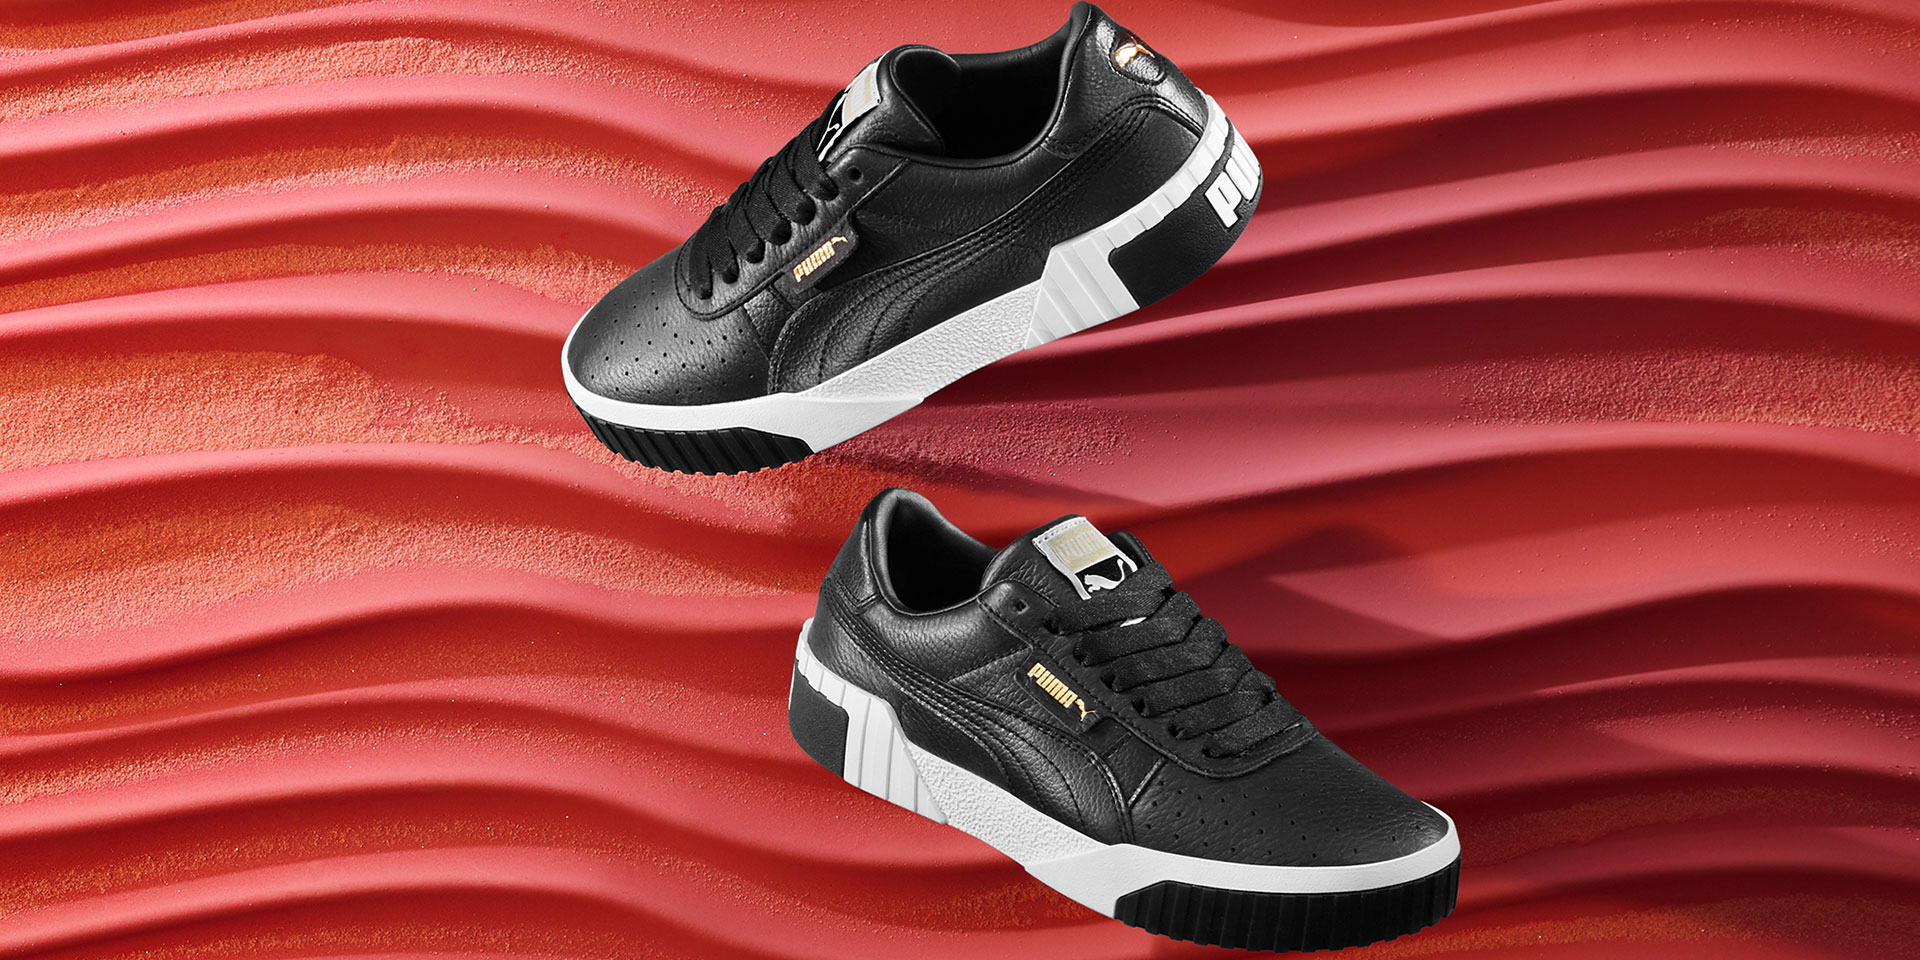 PUMA Drops All New Cali Sneaker Silhouette | Puma cali, New